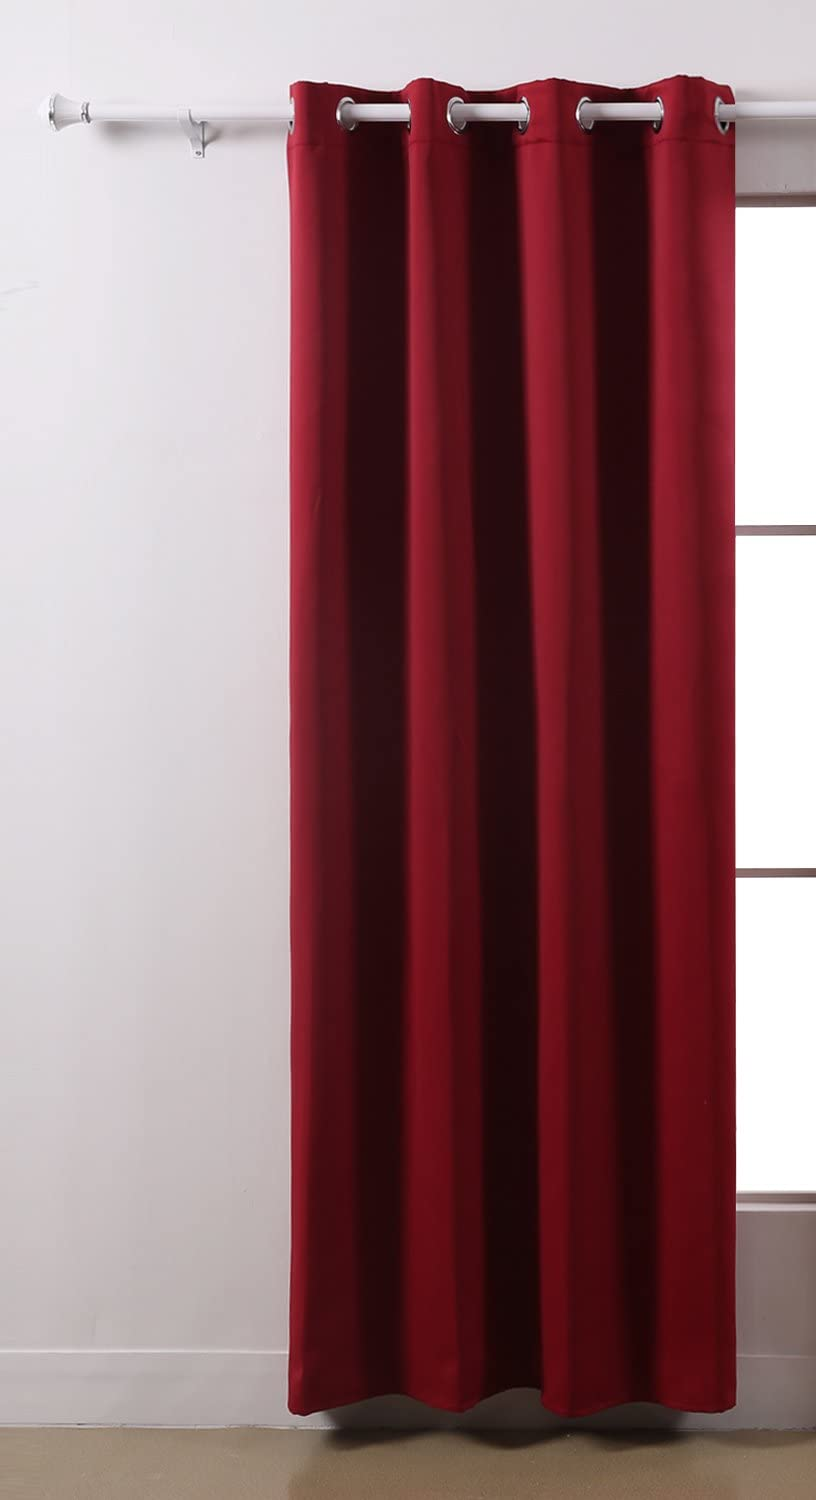 Deconovo Blackout Super Soft Grommets Thermal Insulated Room Darkening Curtain Drapes for Bedroom, 52x84 Inch, Red